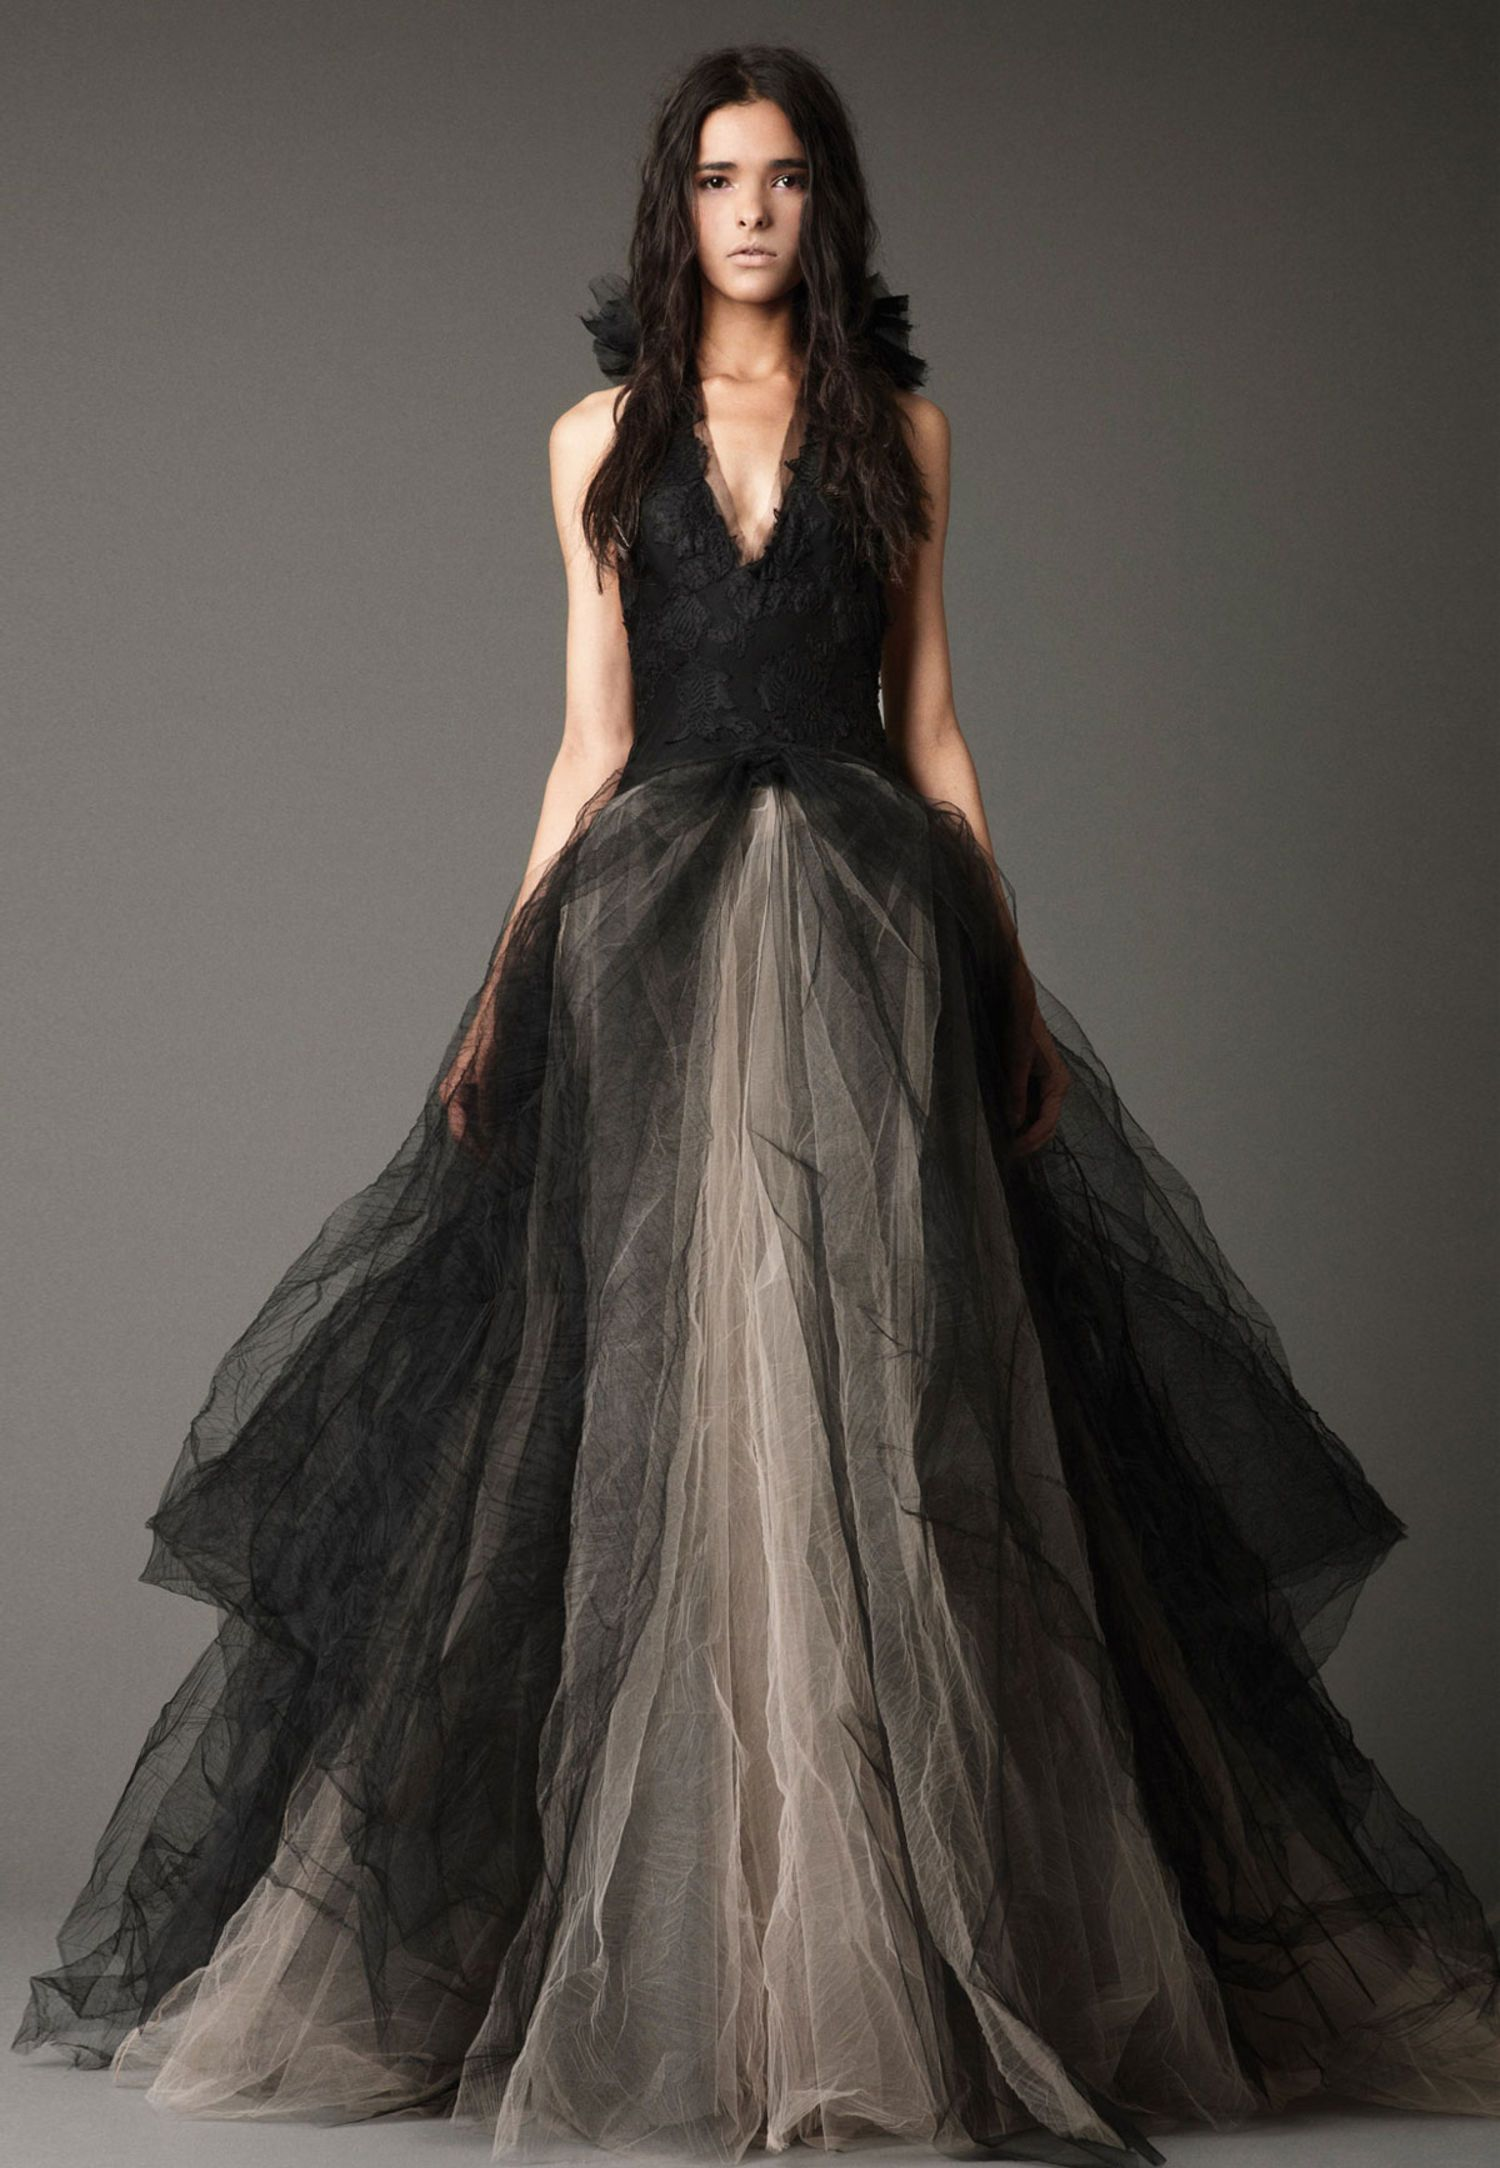 3505fddfdef5e Shenae Grimes recently wore this black Vera Wang(2012) Gown for her wedding  and looked amazing!